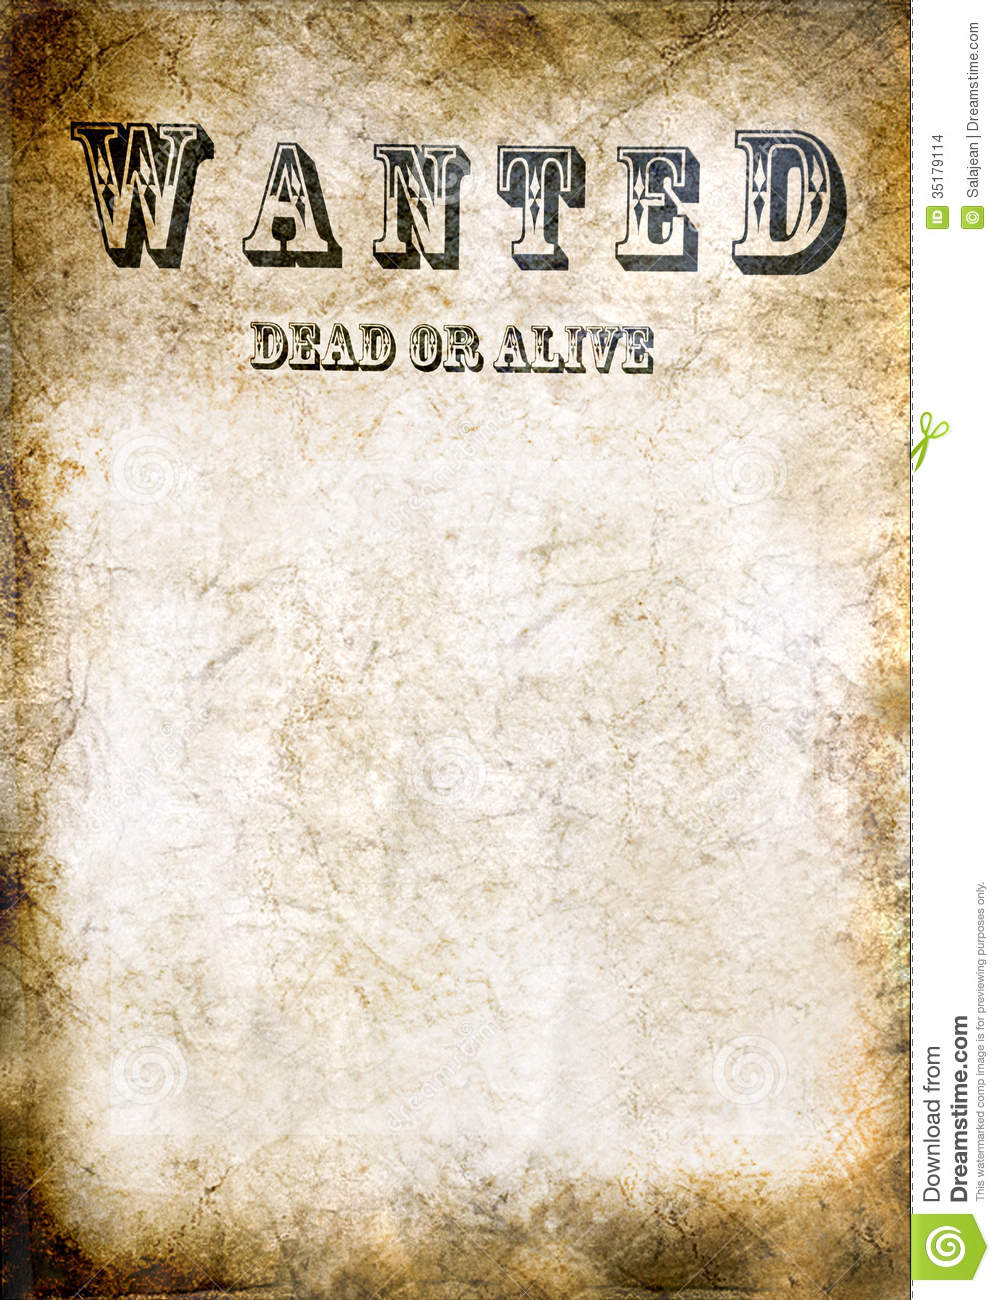 Wanted vintage poster dead or alive stock photo image for Wanted dead or alive poster template free